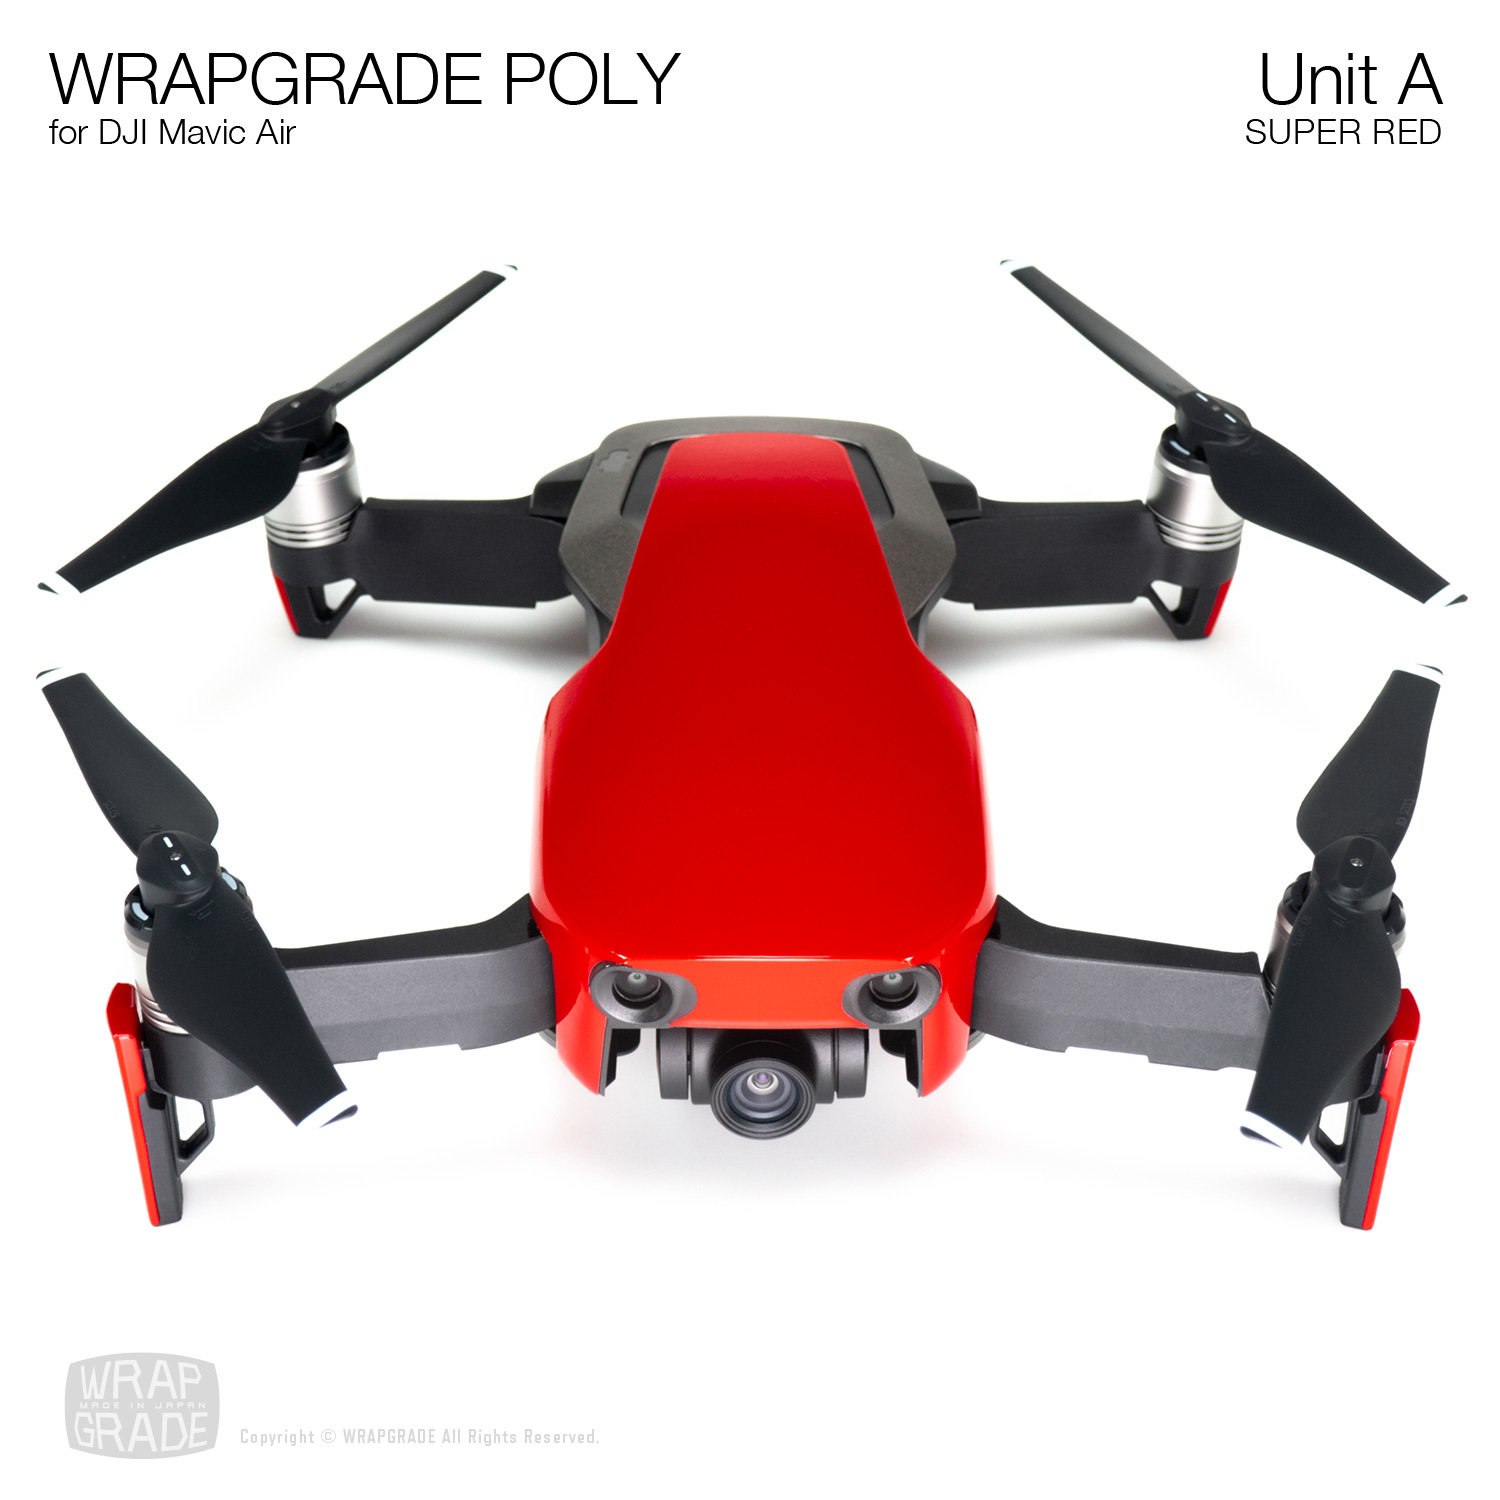 Wrapgrade Poly Skin for DJI Mavic Air | Unit A (SUPER RED)